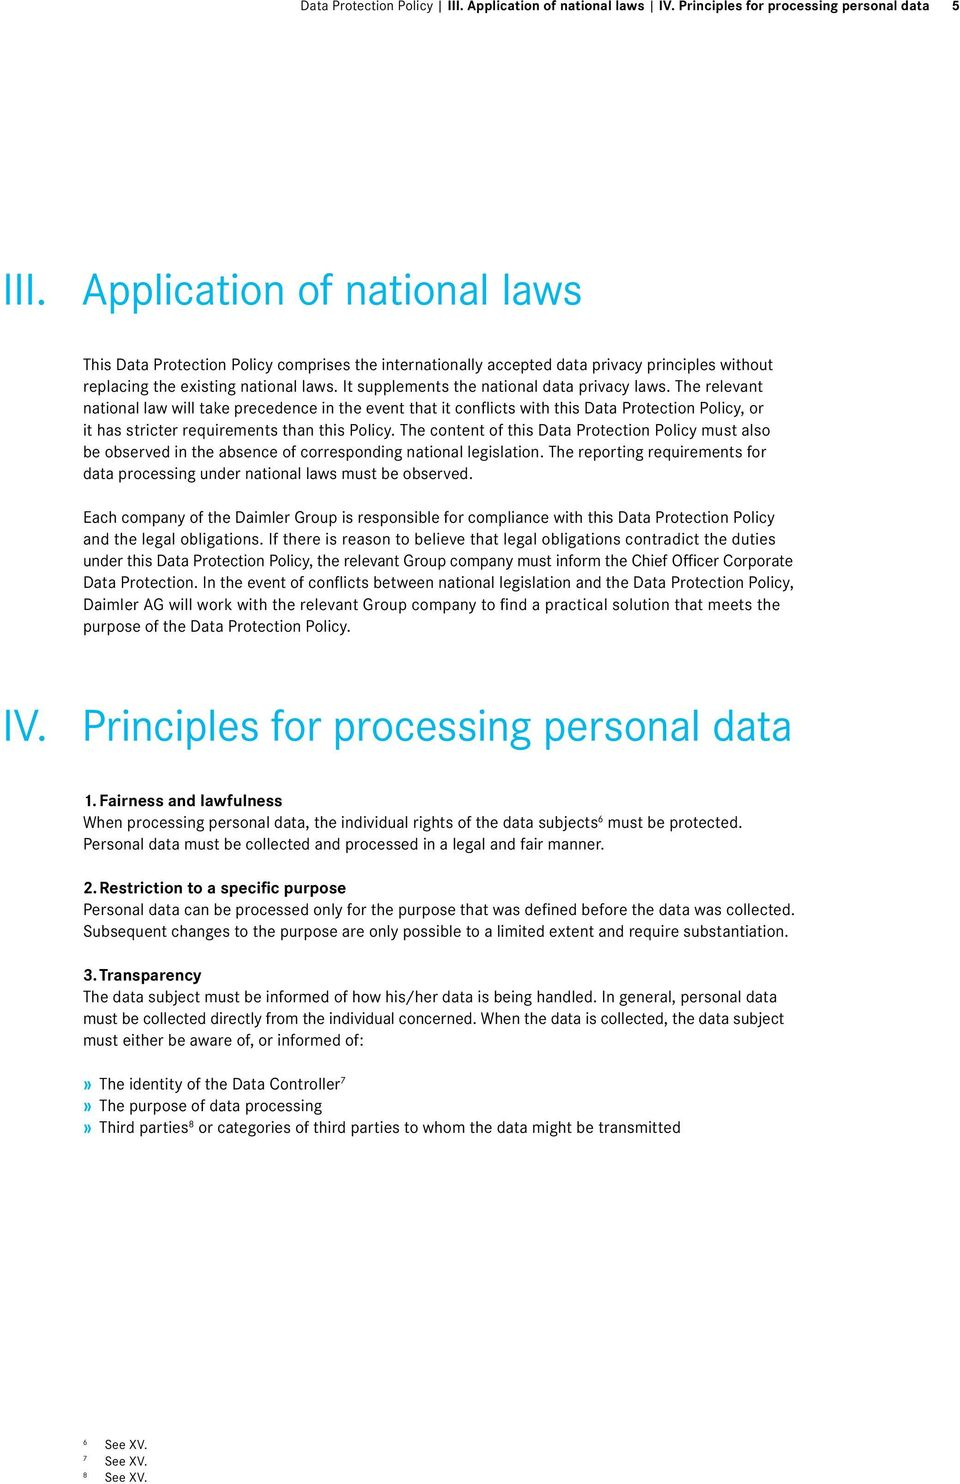 It supplements the national data privacy laws.